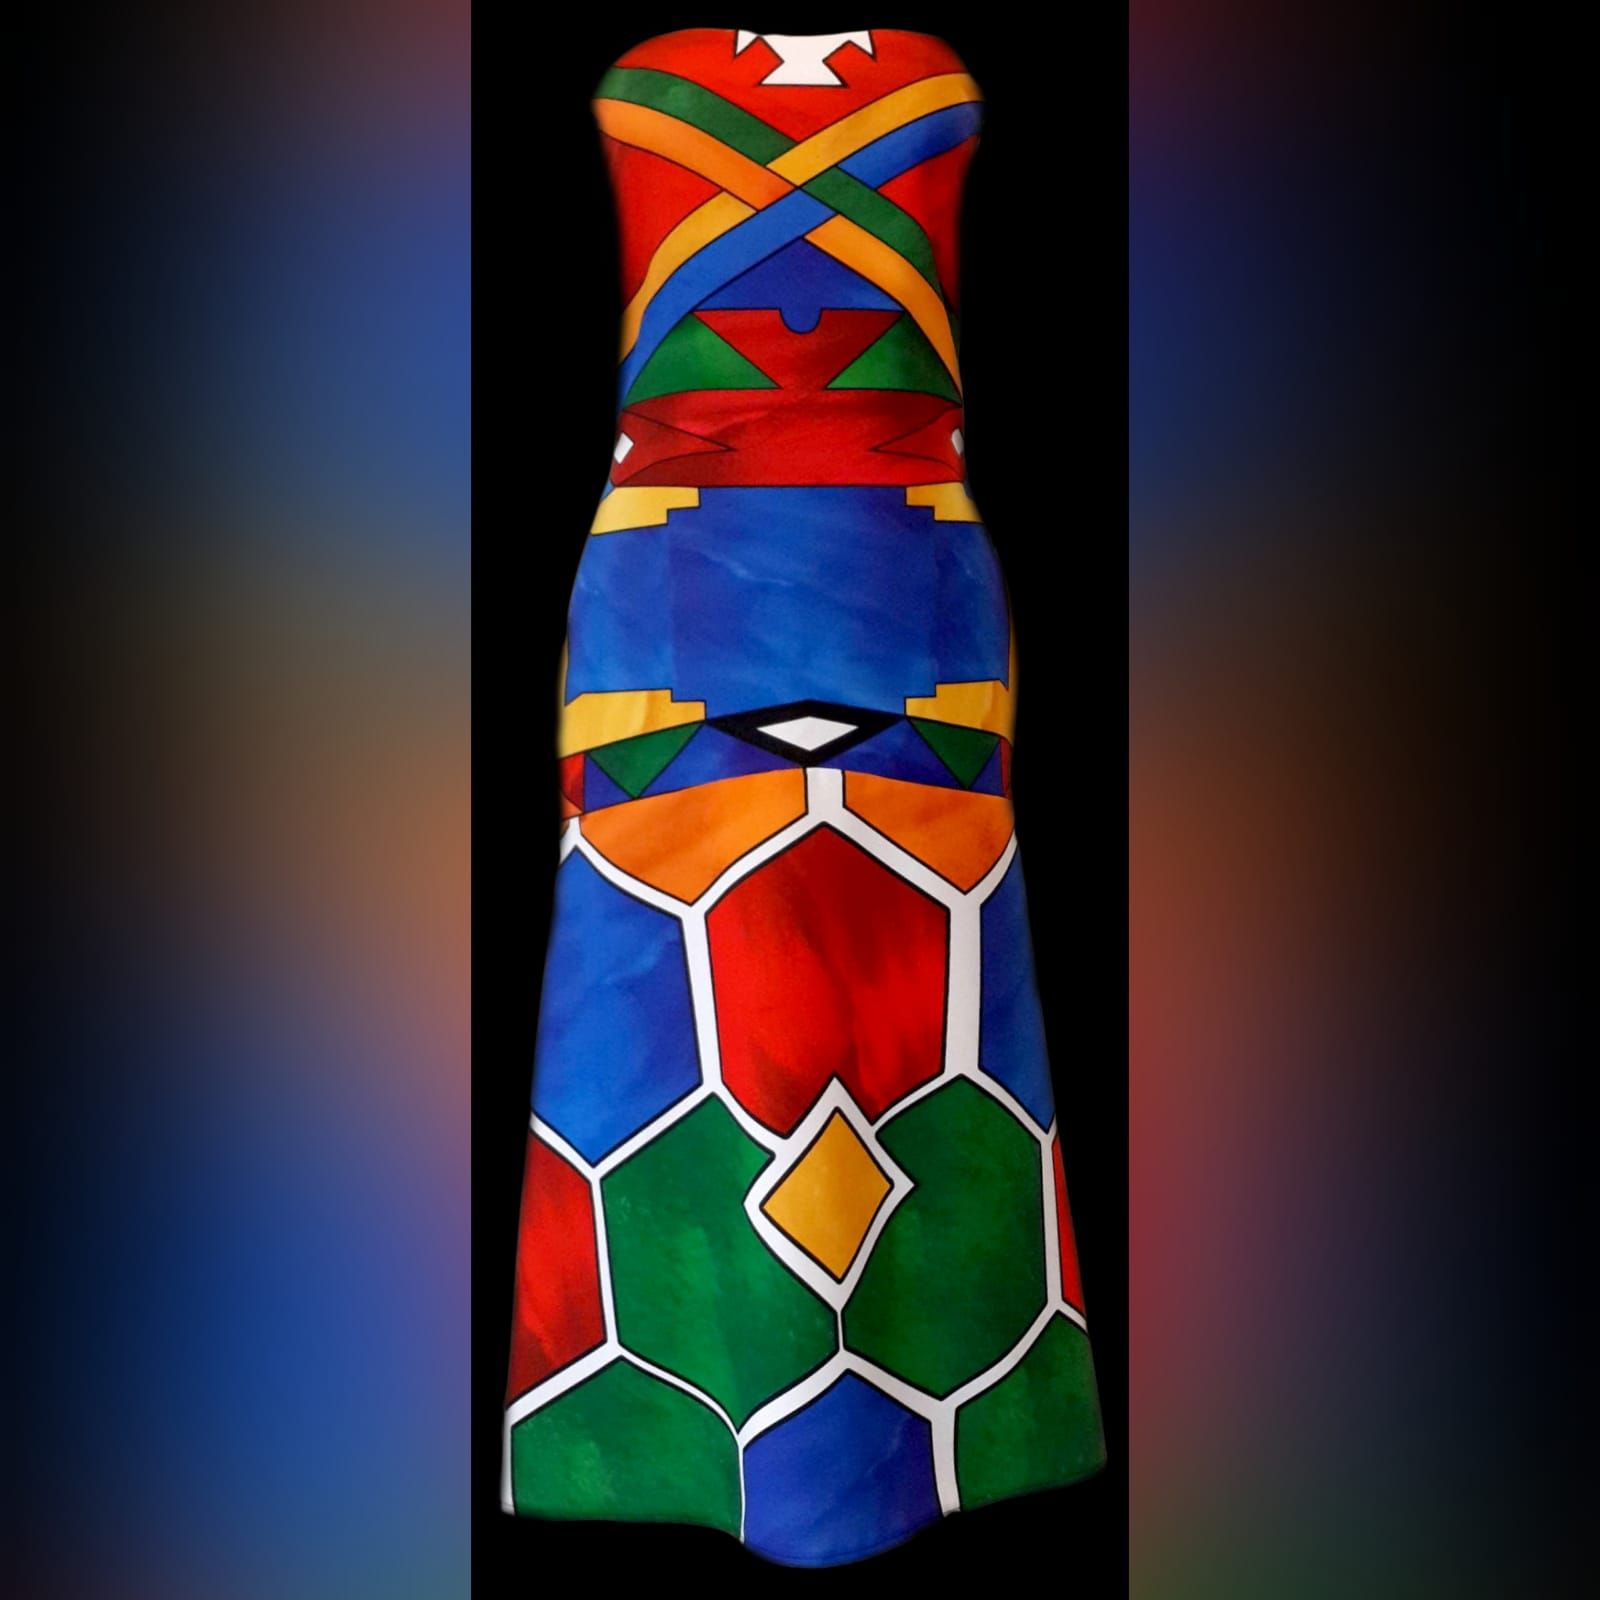 Ndebele traditional wedding dress 2 ndebele traditional wedding dress. Boob tube traditional wedding dress and fitted till the hips and flowy.